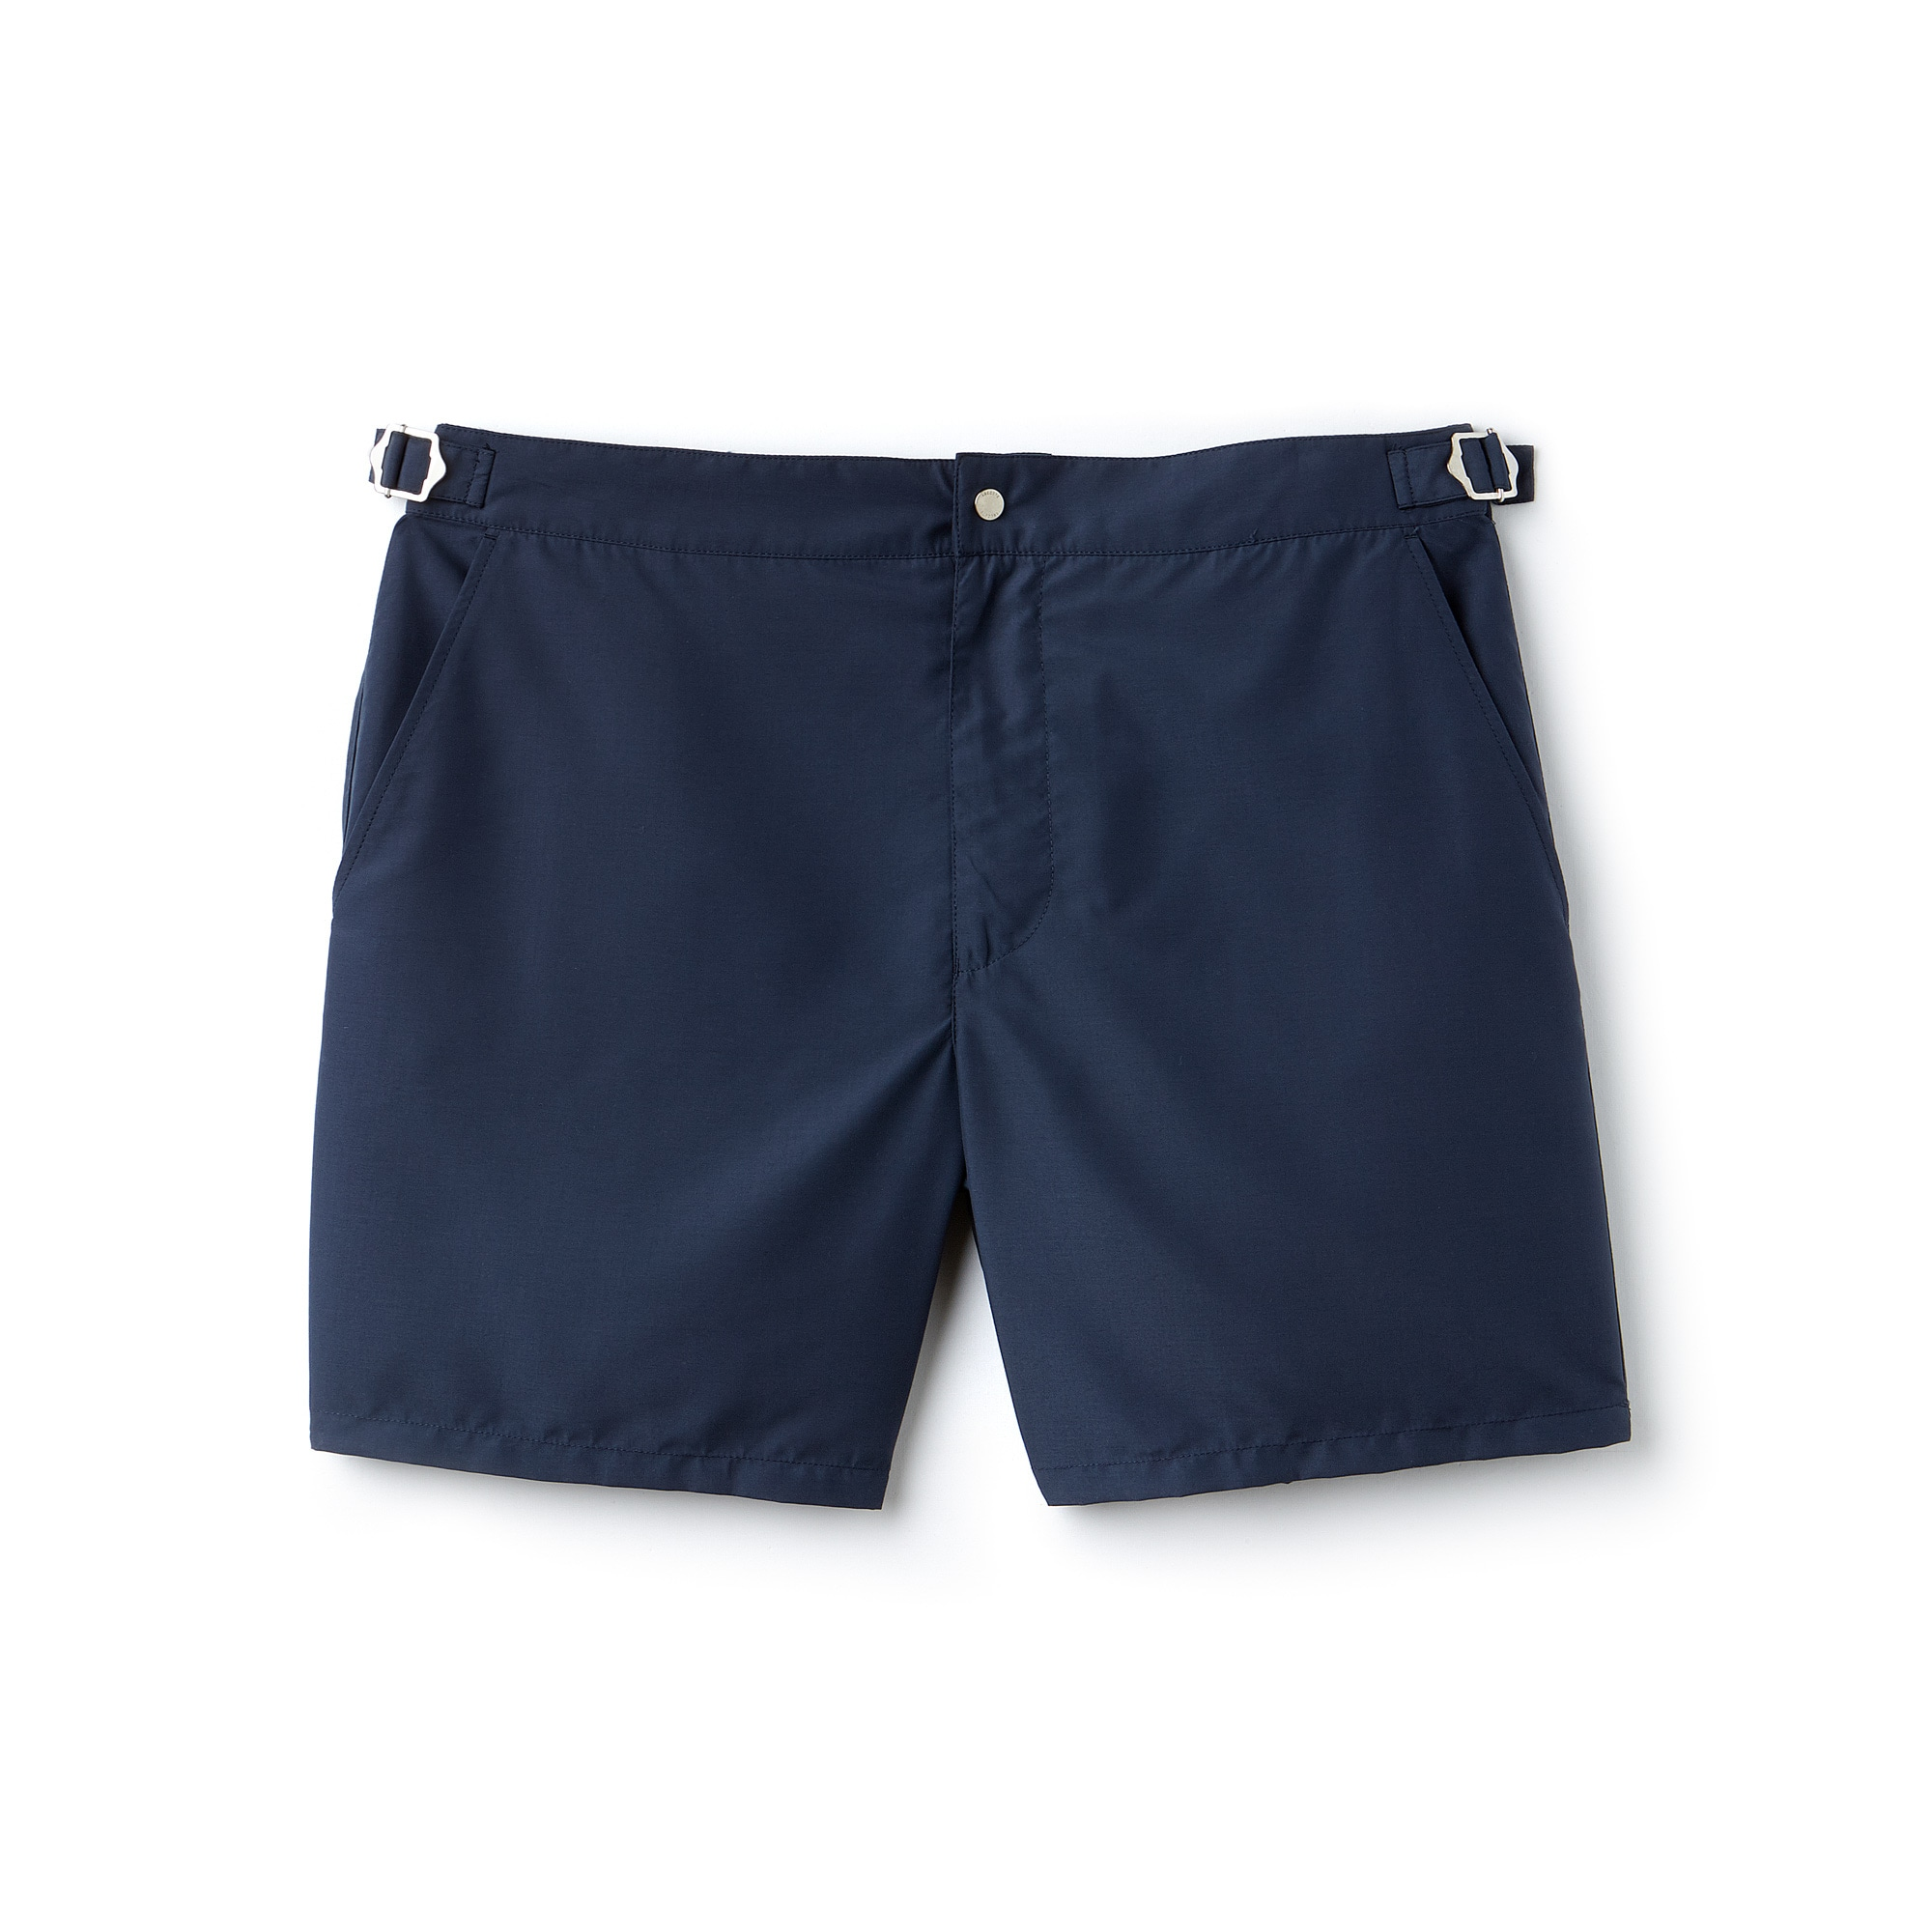 Men's Side Buckles Swimming Trunks